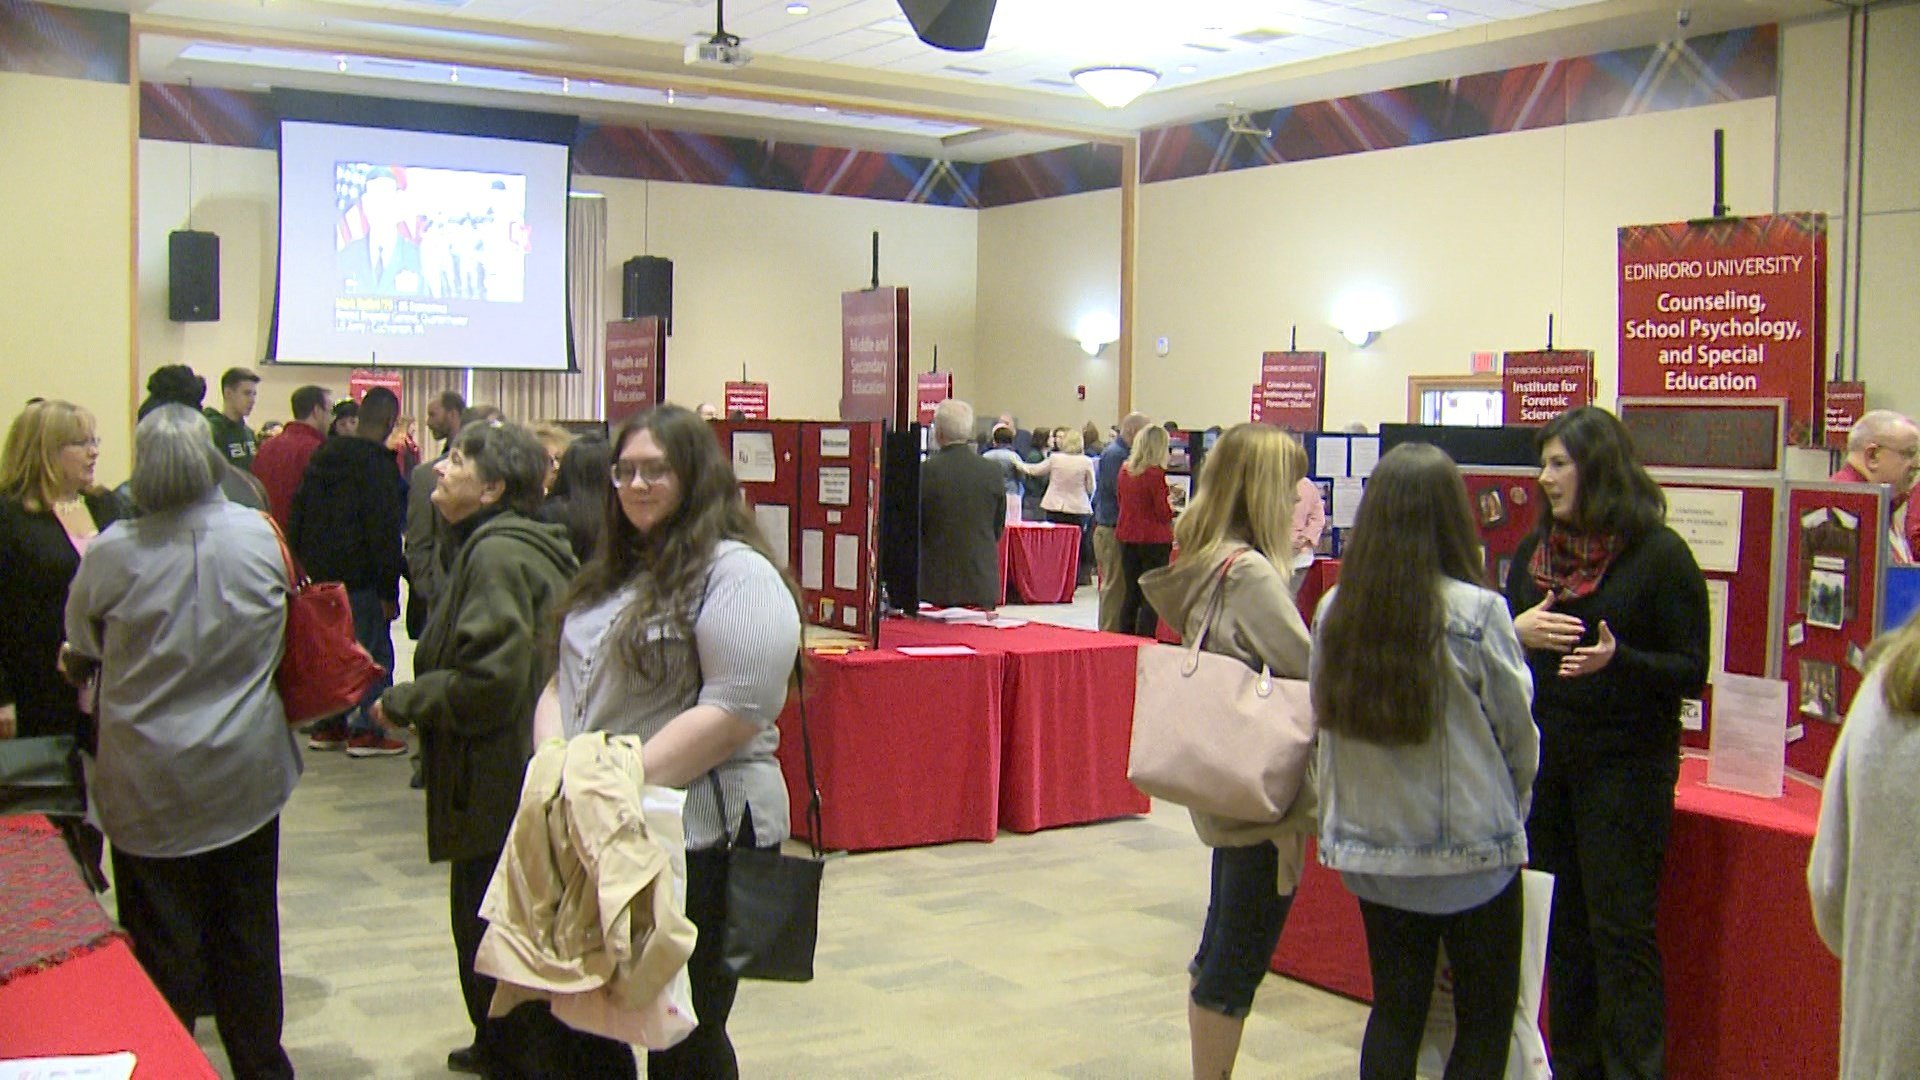 Students check out different stations at the Frank G. Pogue Center during Edinboro University's spring open house.